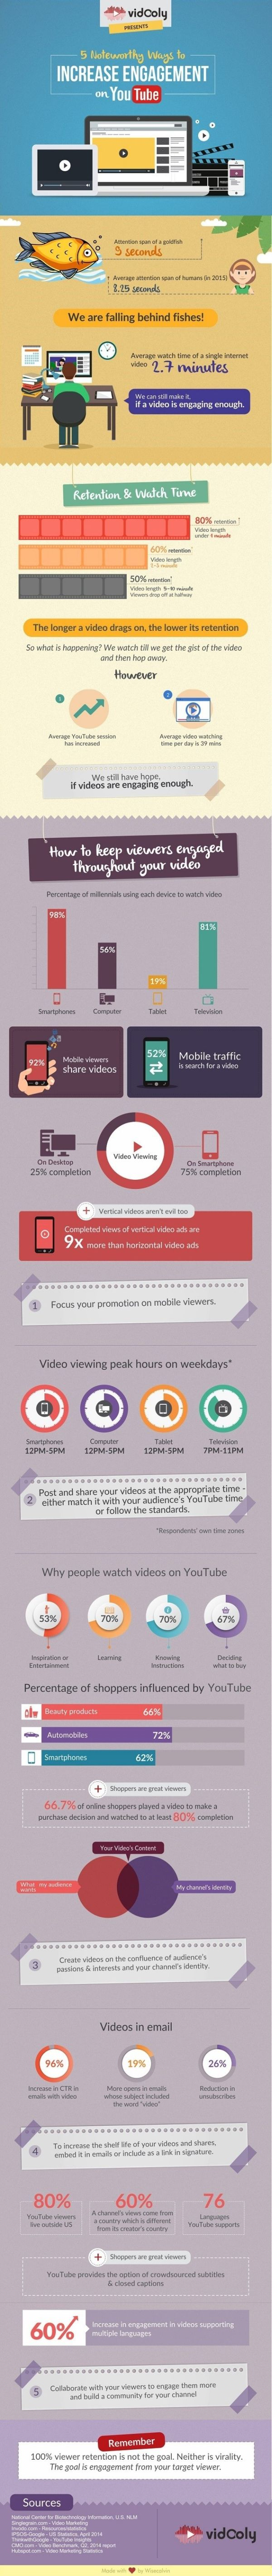 Boost_YouTube_Engagement_Infographic